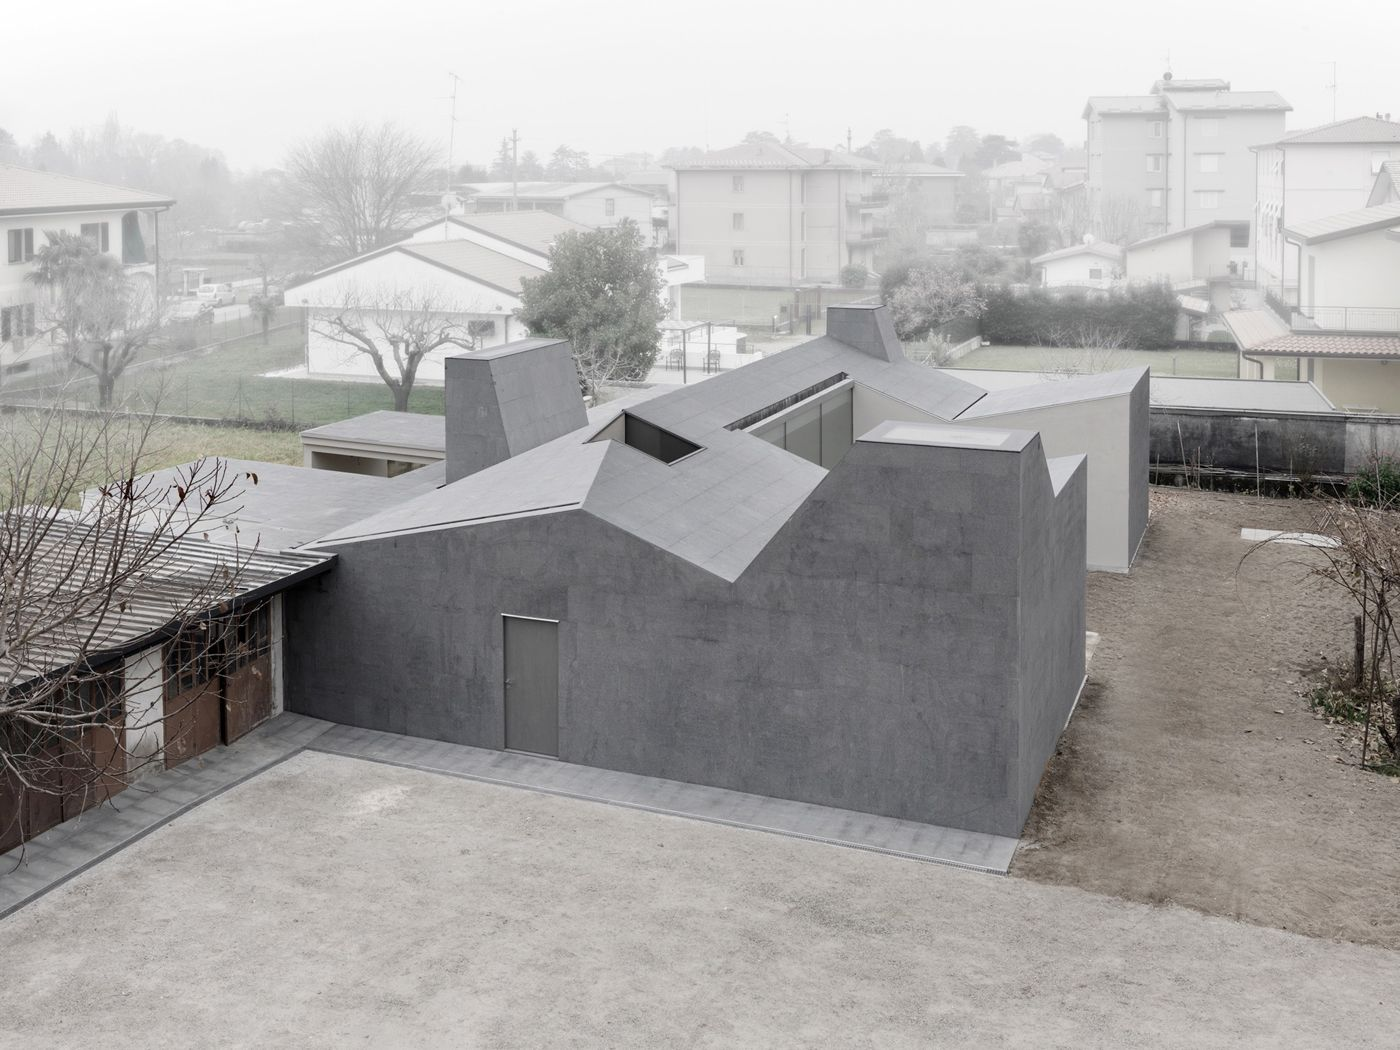 Wiggly House Minimalissimo Architecture Minimalist Architecture Concrete Architecture